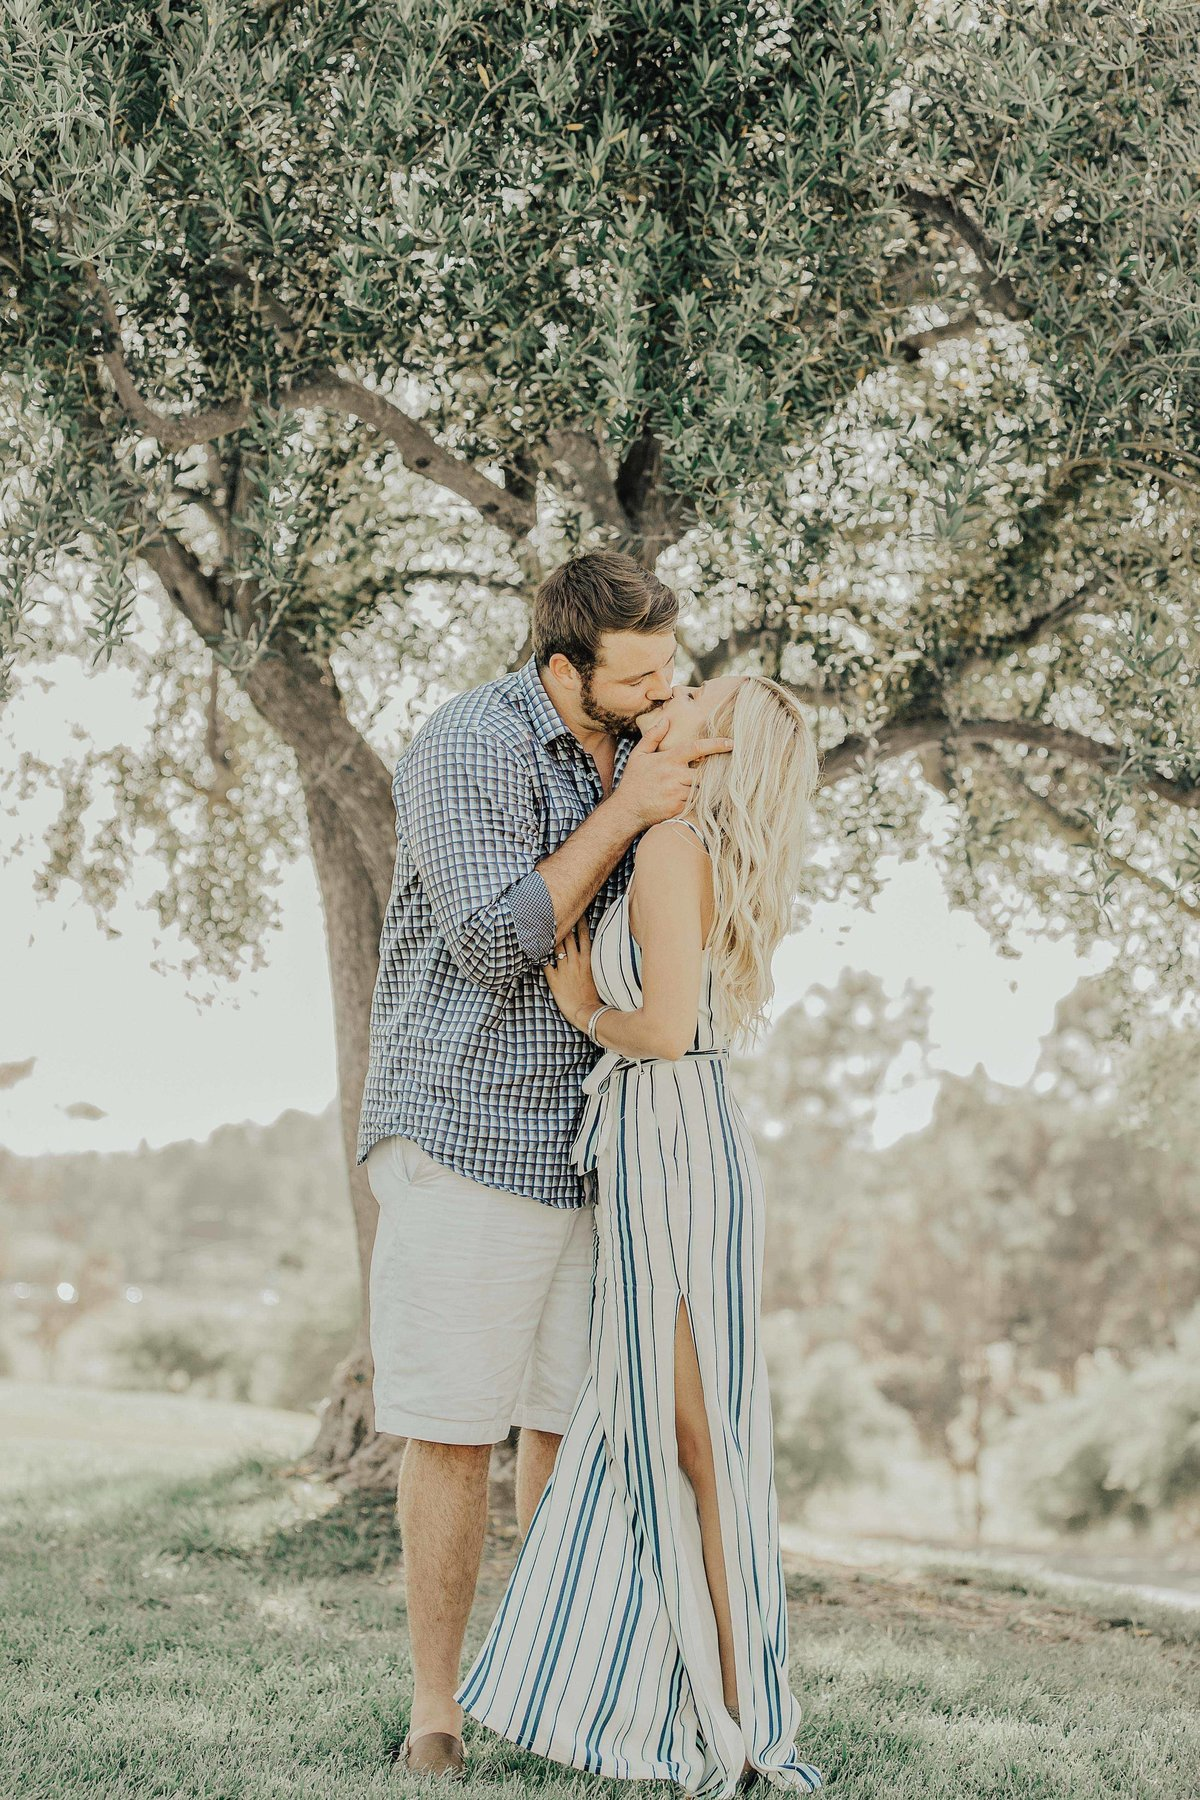 Babsie-Ly-Photography-Fine-Art-Film-Surprise-Proposal-Photographer-Temecula-Thornton-Winery-California-008